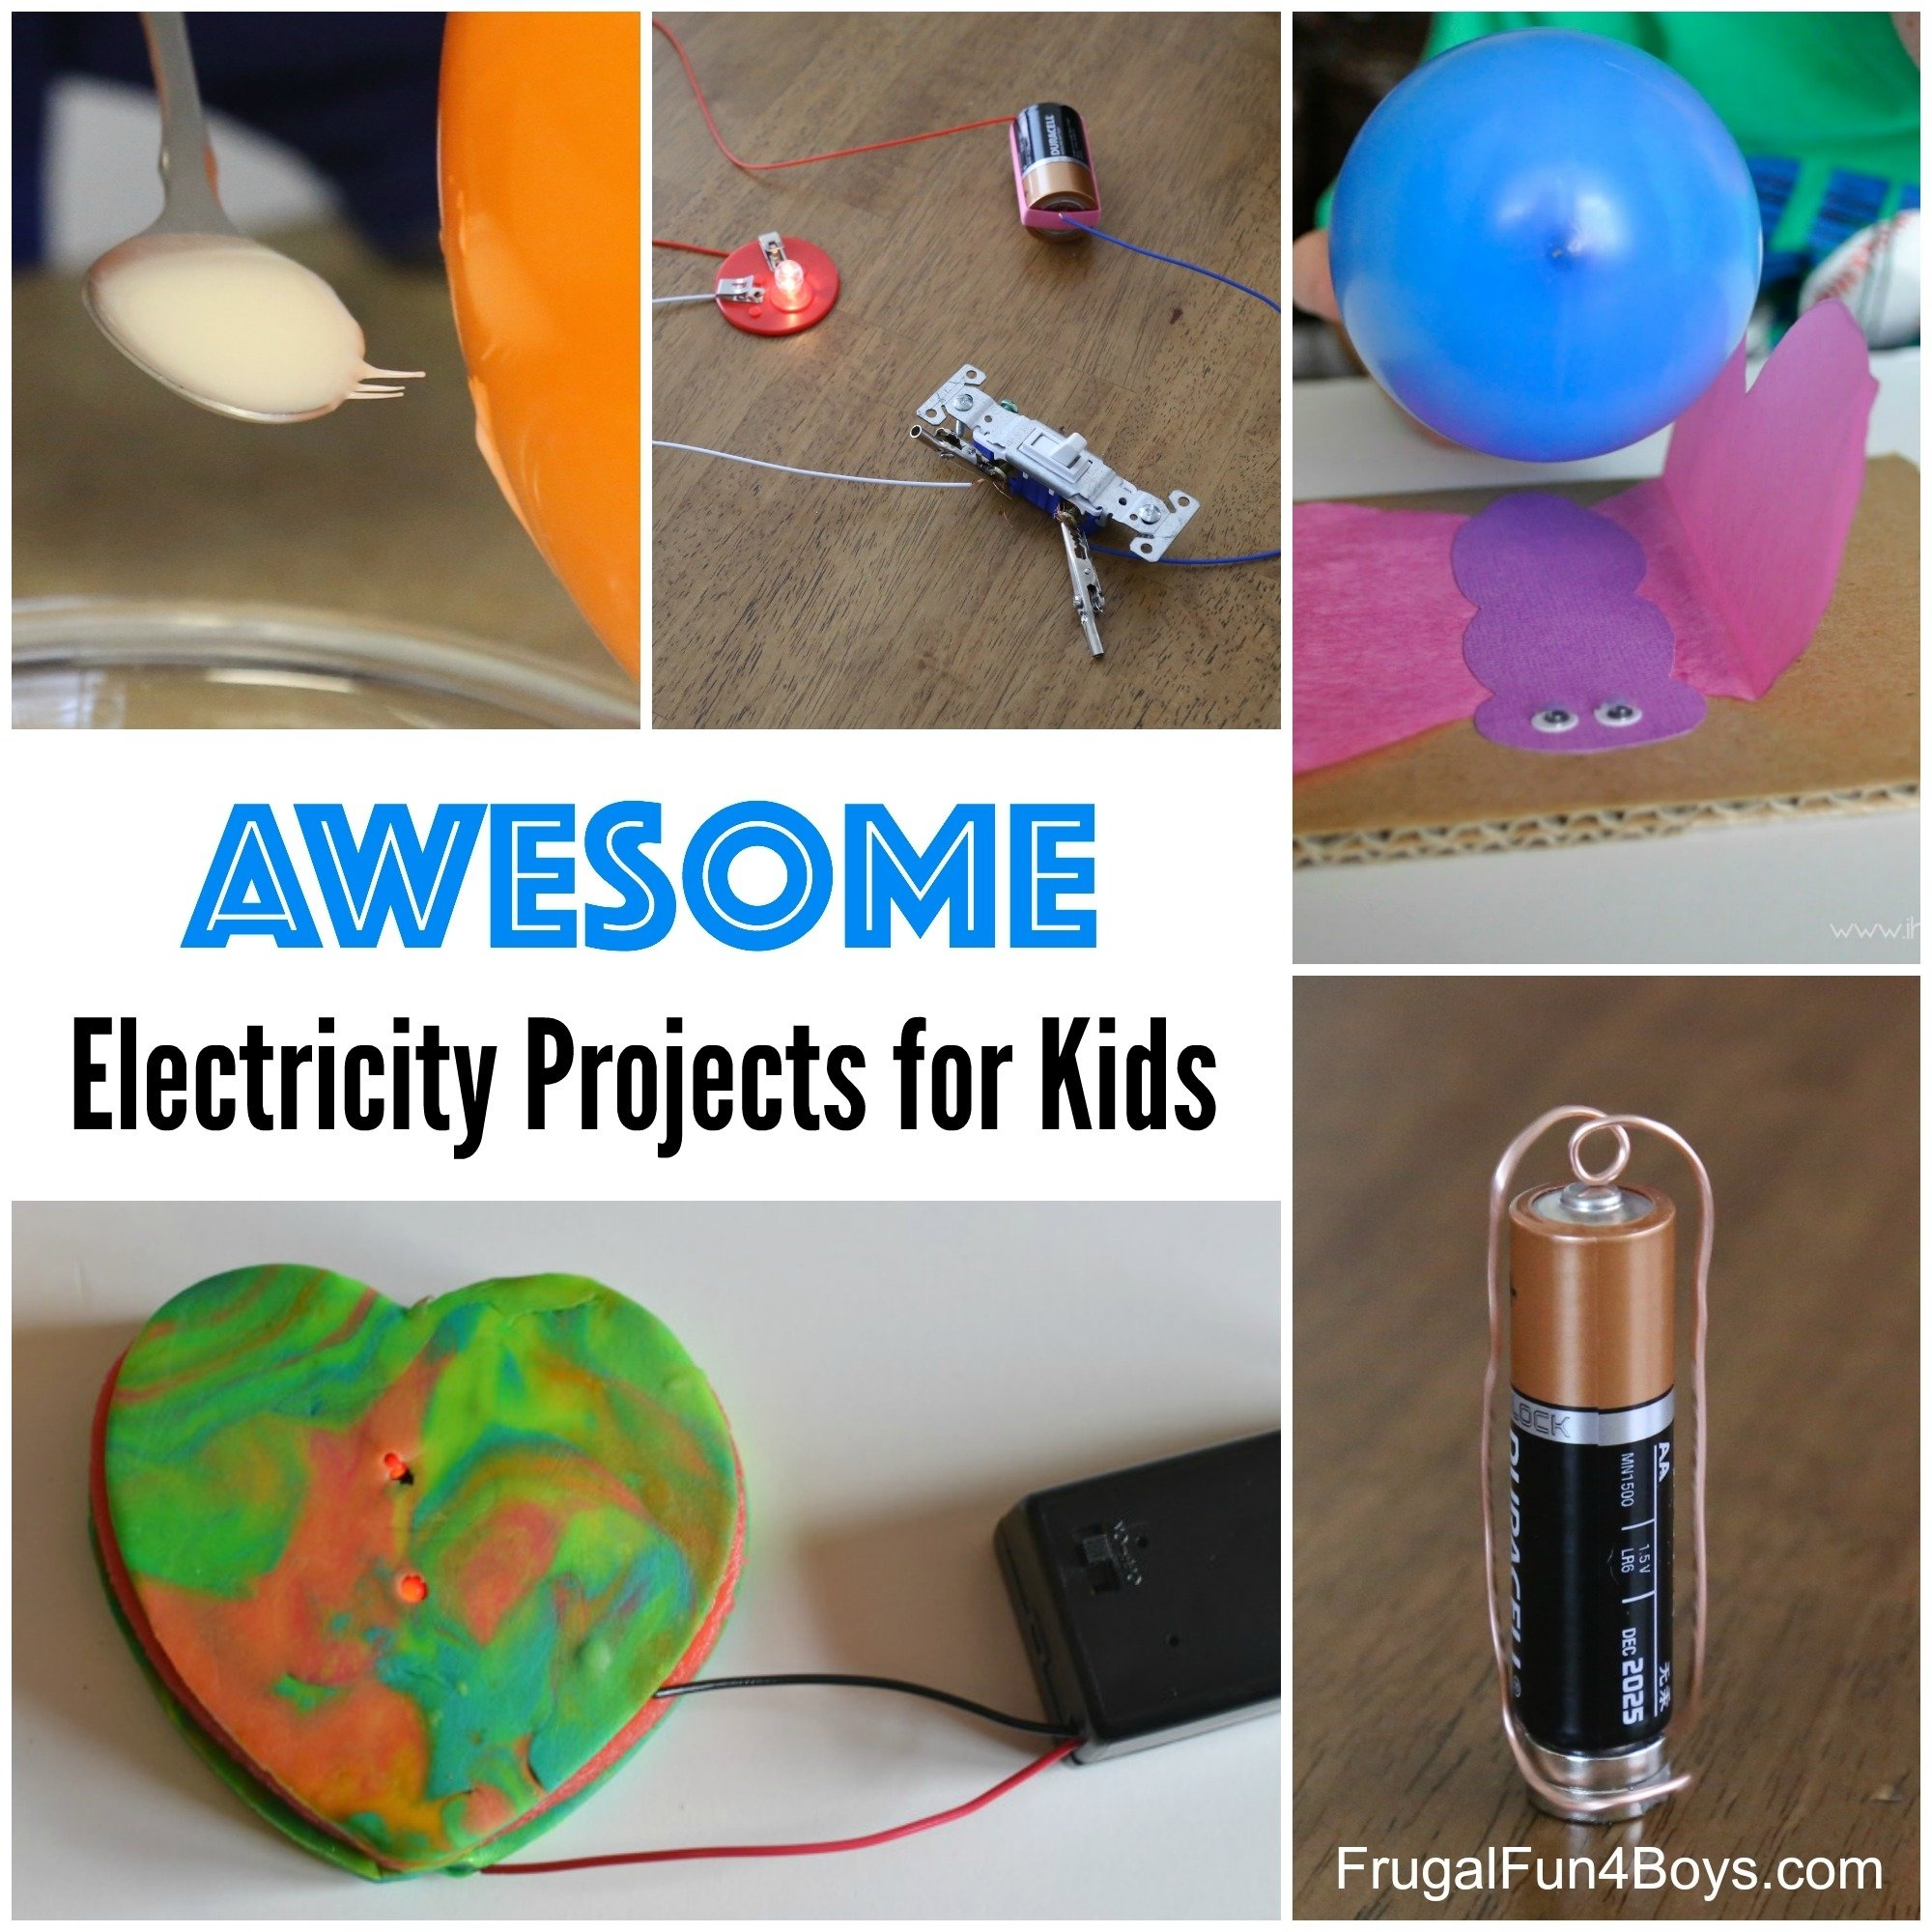 10 Stylish Science Projects Ideas For Kids awesome electricity projects for kids 2020